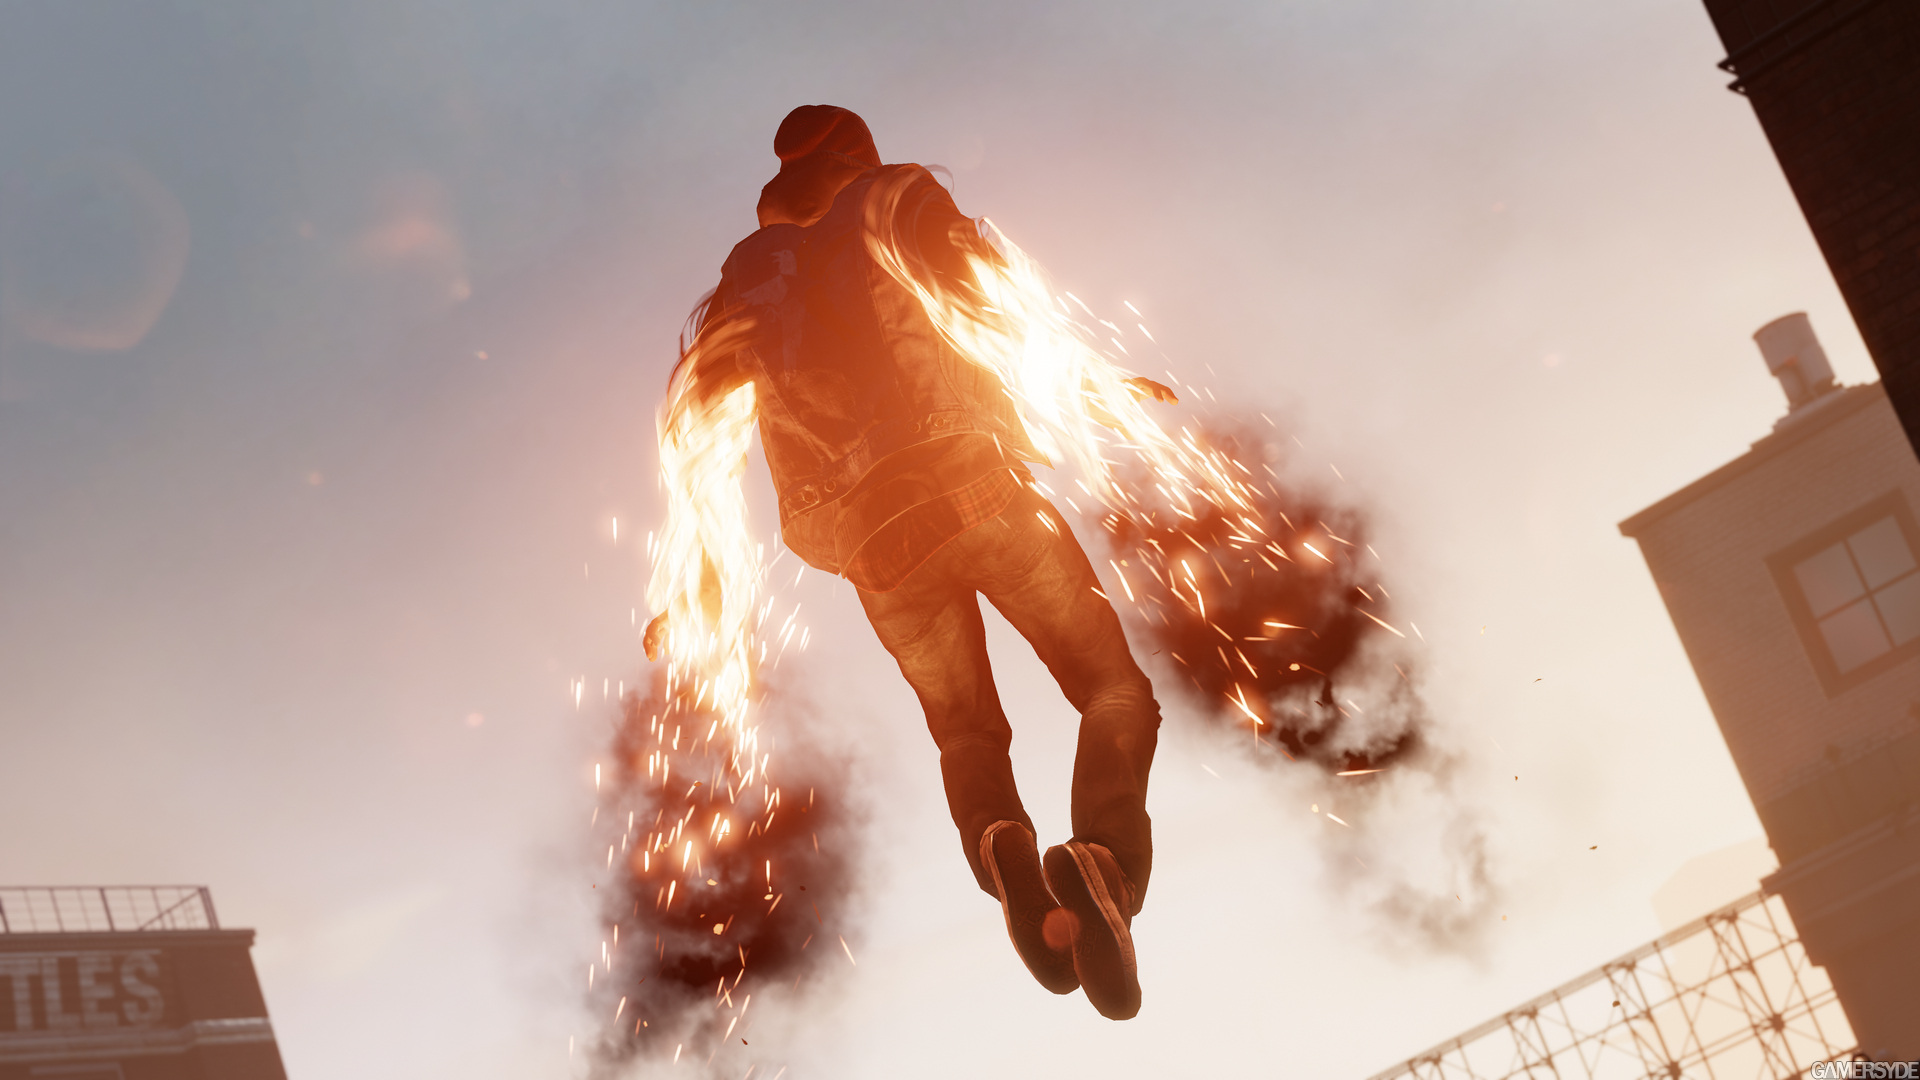 image_infamous_second_son-22309-2661_001